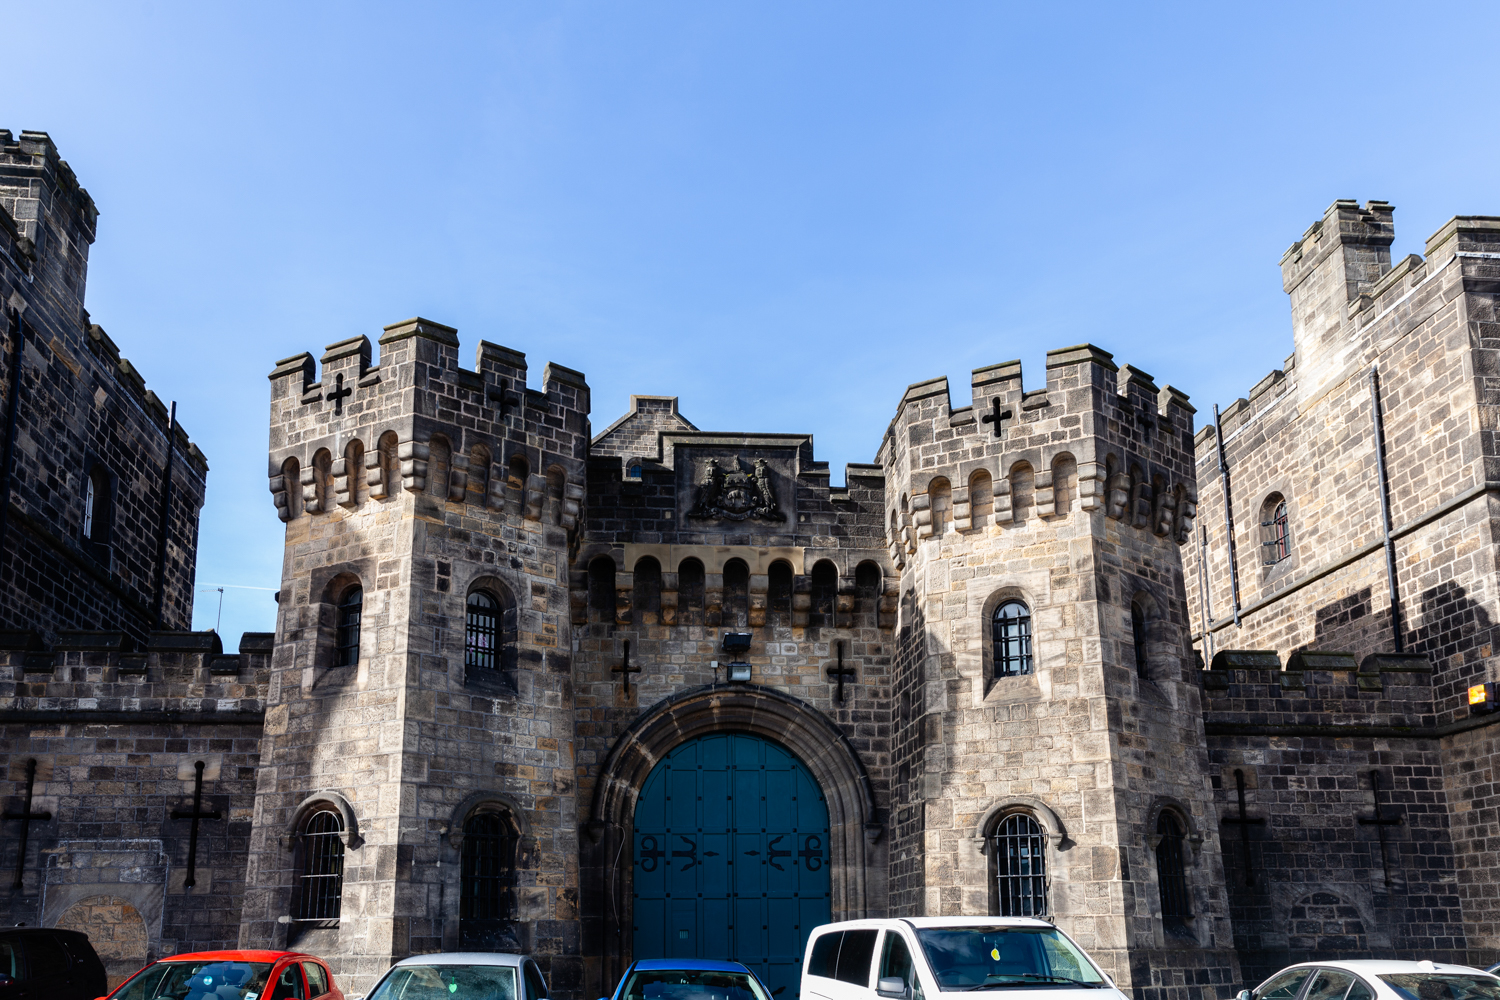 The old front of Armley prison